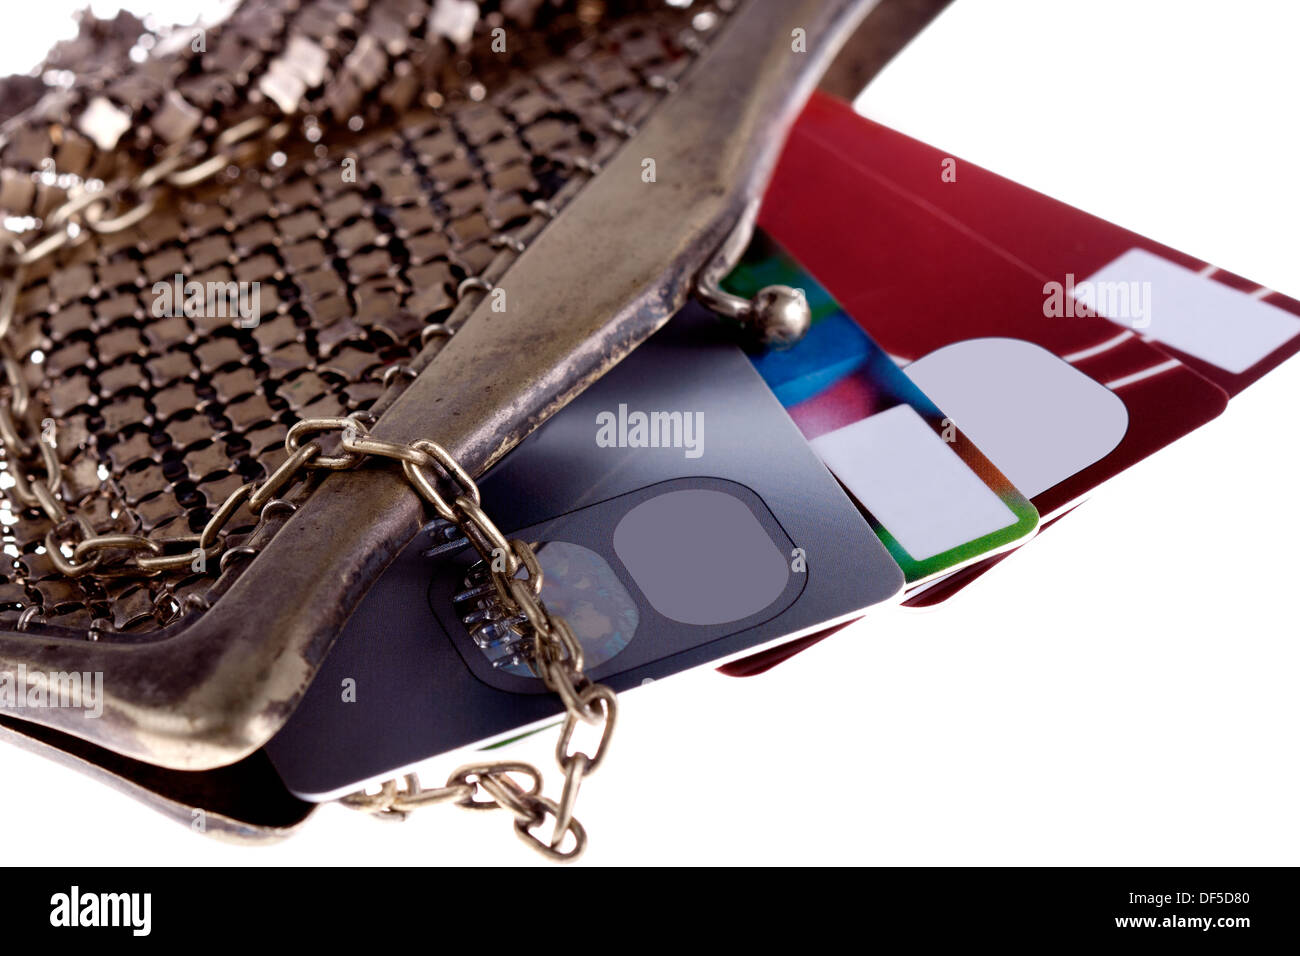 antiquarian purse with credit cards Visa and Mastercard - Stock Image